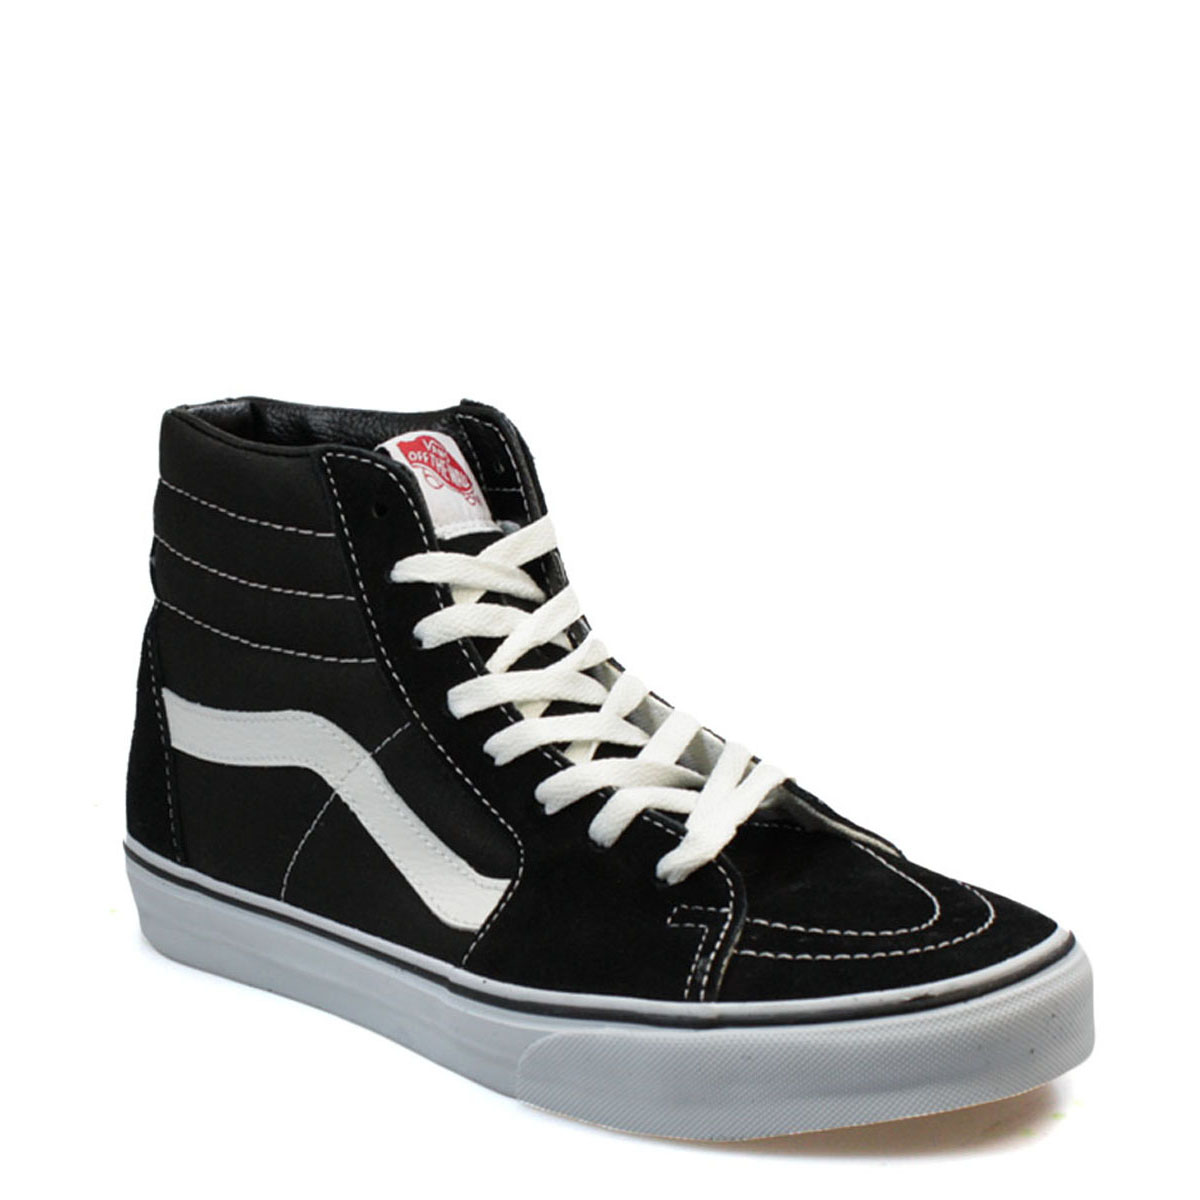 vans womens trainers leather suede sk8 high tops lace up shoes various colours ebay. Black Bedroom Furniture Sets. Home Design Ideas